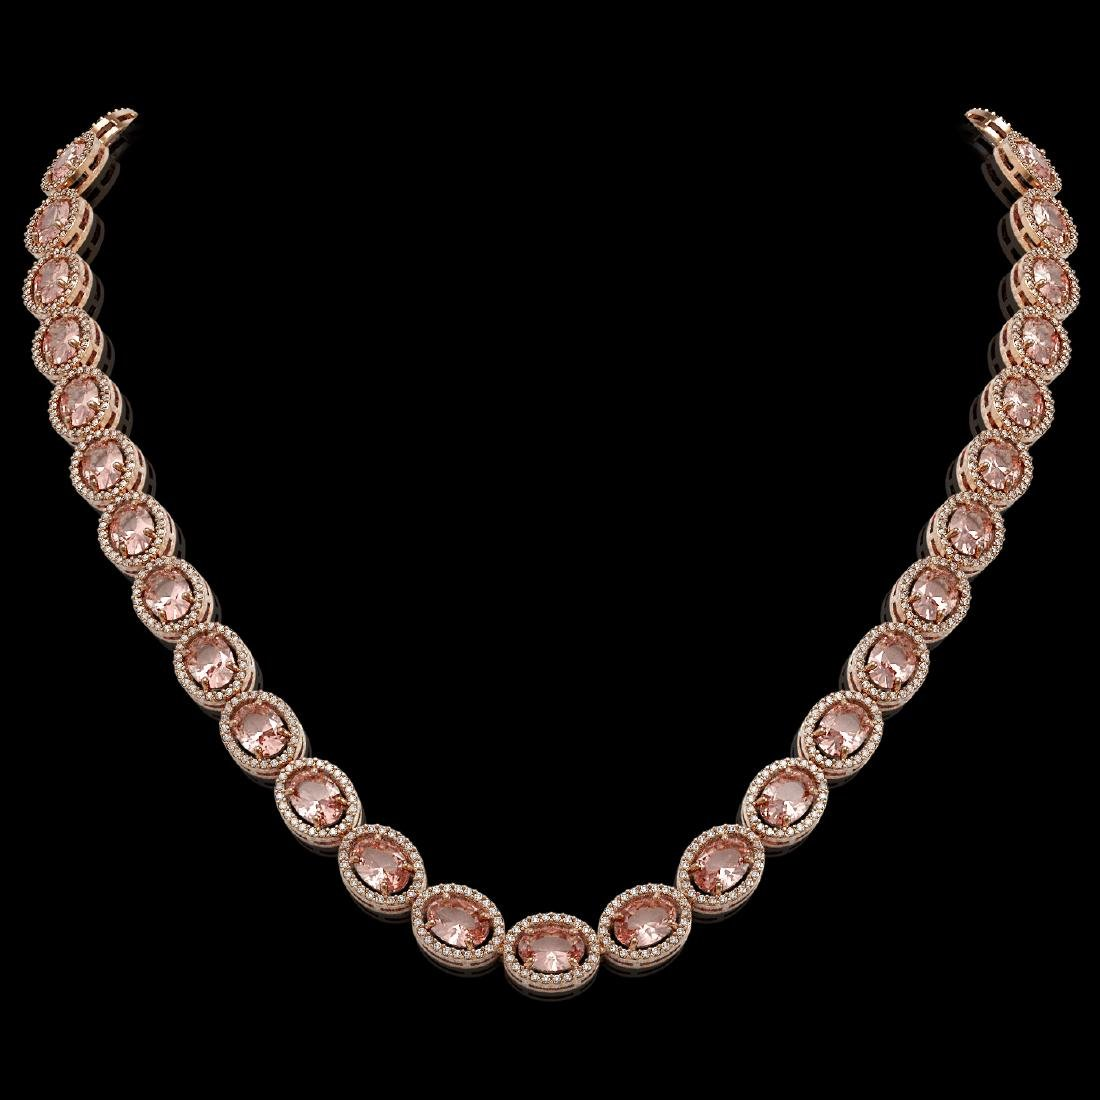 45.98 CTW Morganite & Diamond Halo Necklace 10K Rose